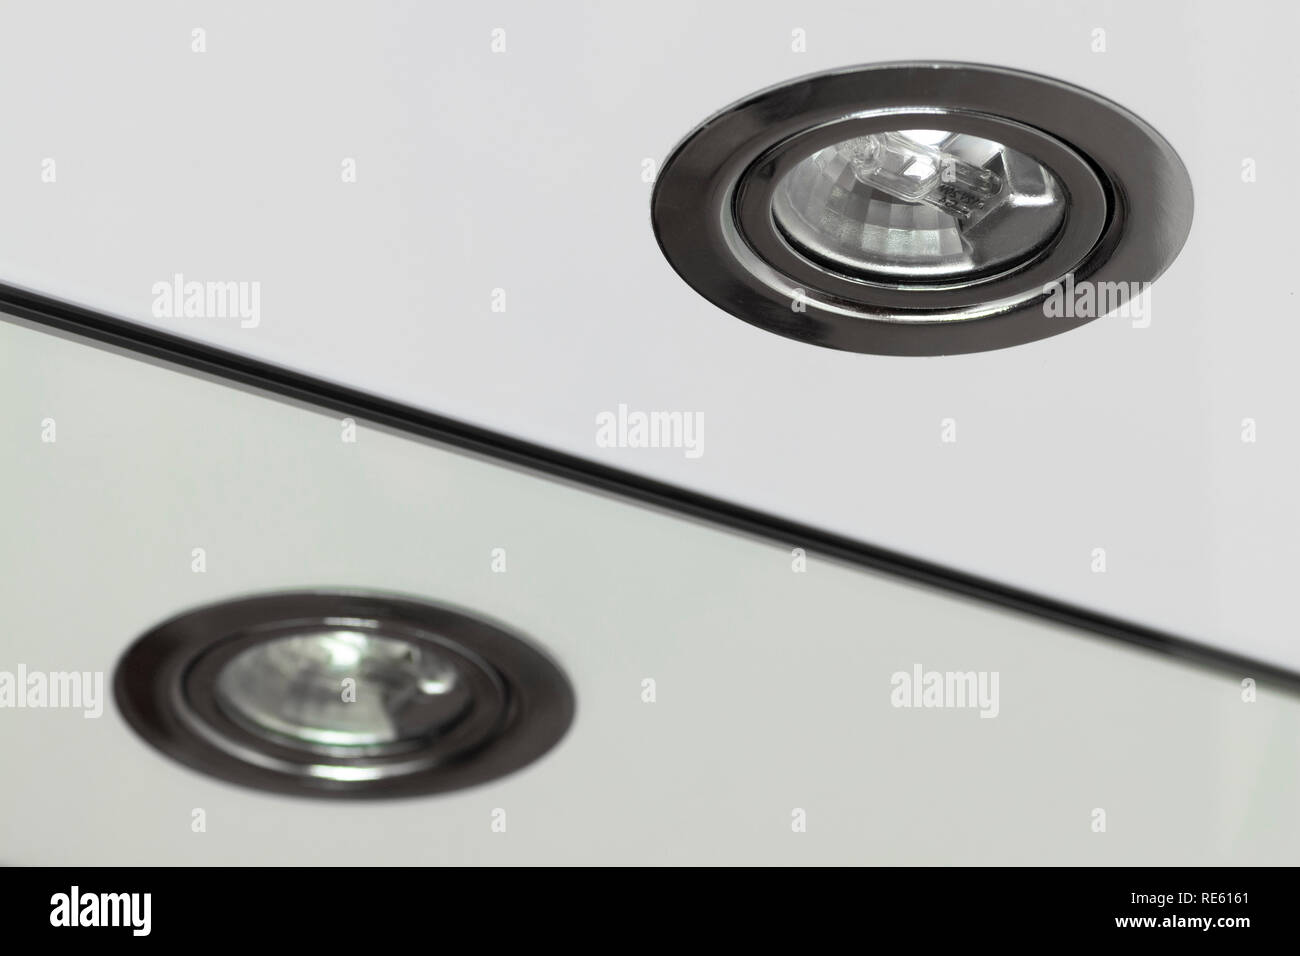 Recessed halogen lamp and reflection in the washbasin mirror. - Stock Image